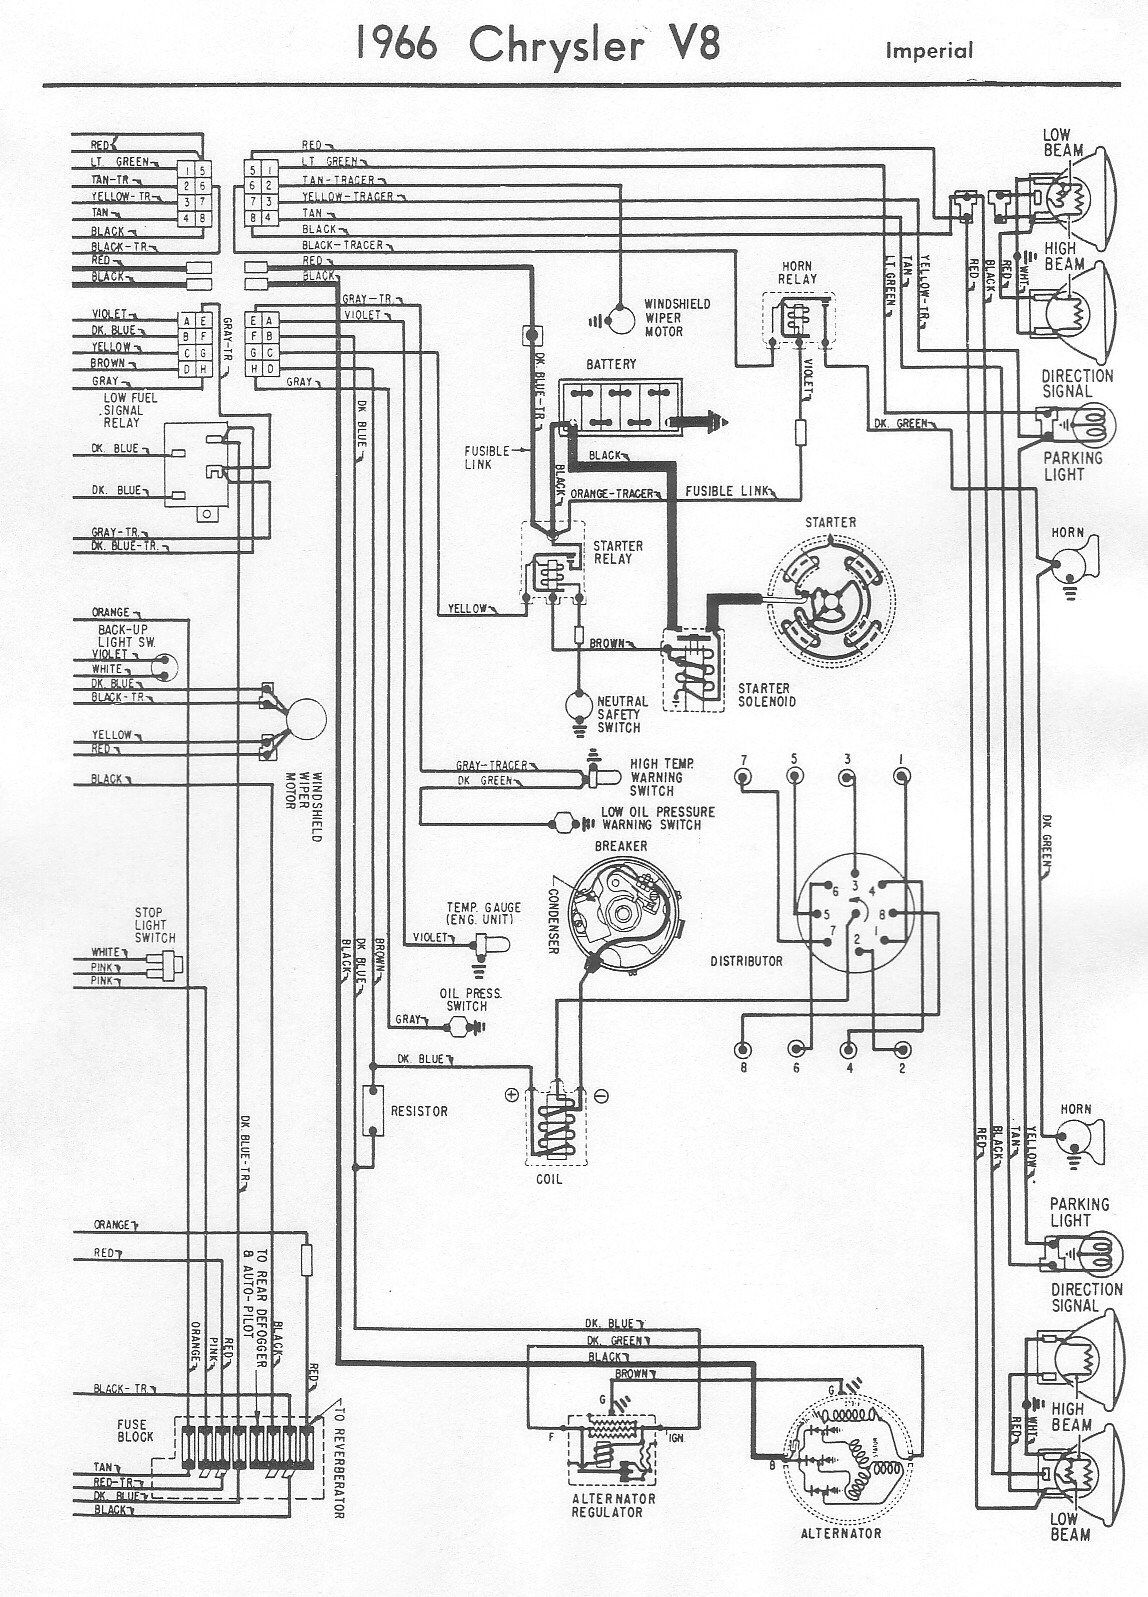 Neon Sign Schematics Wiring Library Electrical Diagrams For Dummies Get Free Image About 85 Camaro Dash Diagram Schematic Auto 66 Imperial 67 Window